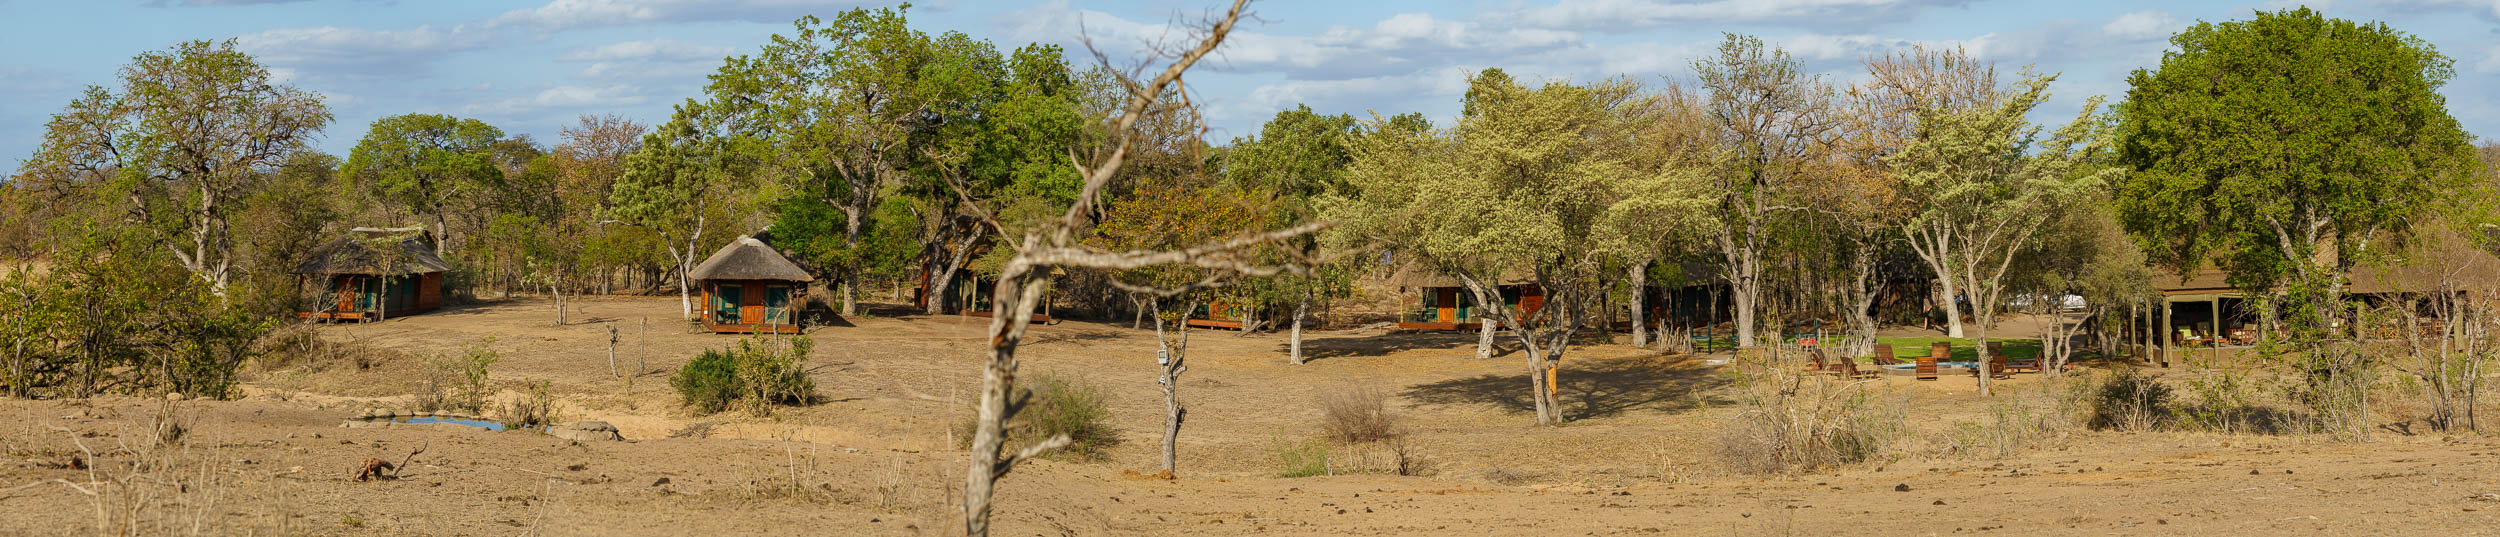 Panorama of Shindzela Tented Camp